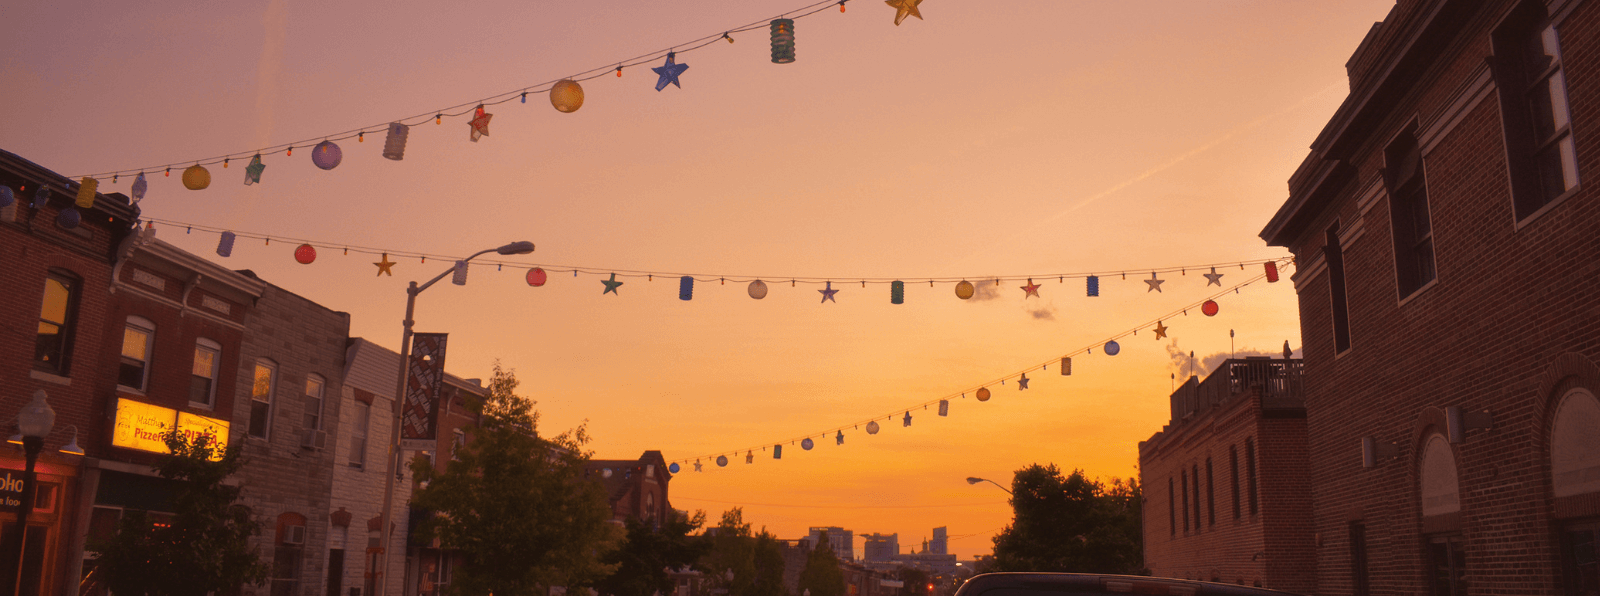 City street at sunset with hanging lanterns